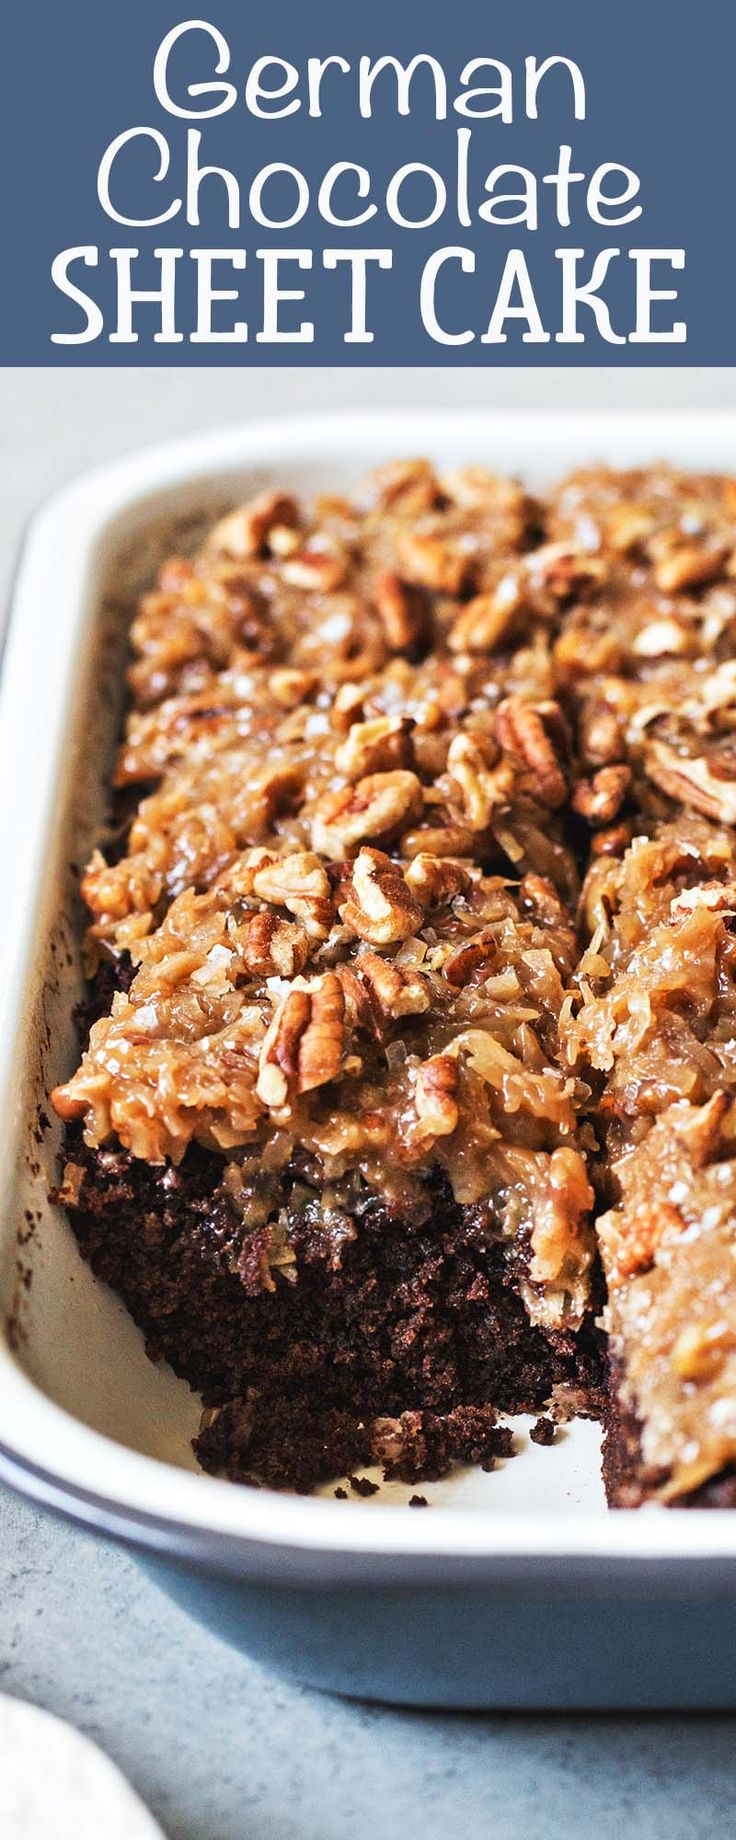 German Chocolate Sheet Cake! Same chocolate cake with gooey coconut-pecan topping, but way easier to make.